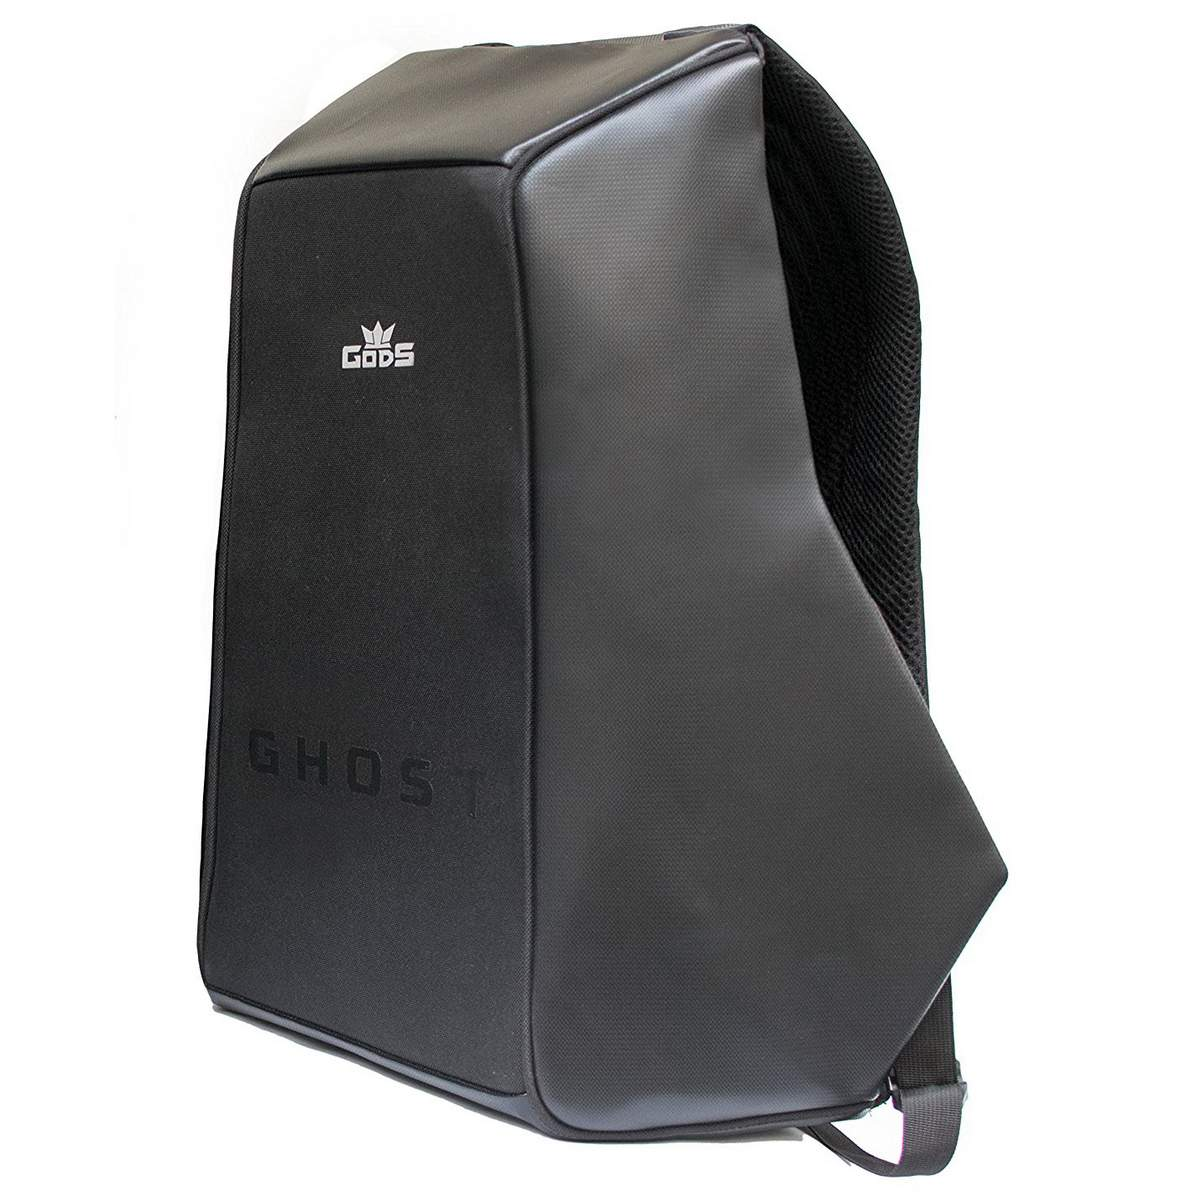 Road Gods The Ghost Premium Smooth Minimalist Anti Theft Laptop  Backpack-Sunrise Trading Co. 06af4bc4e68eb